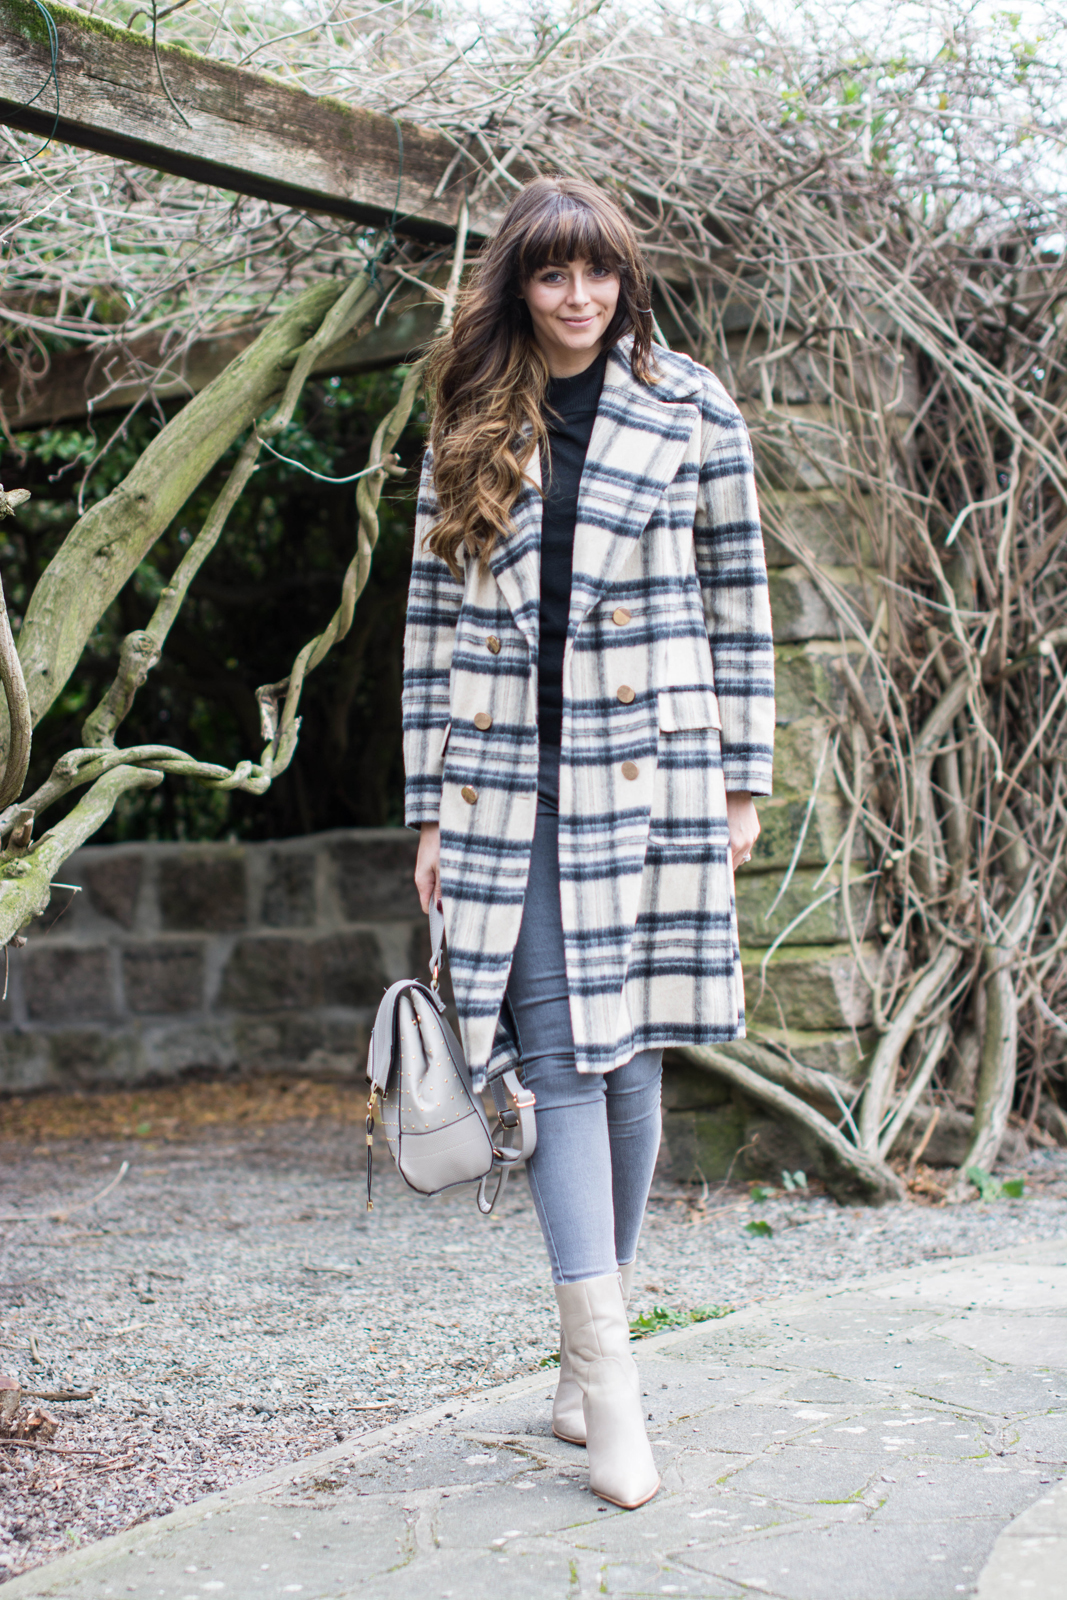 EJSTYLE - River Island brushed check coat, grey skinny jeans, black jumper, taupe M&S boots with pointed toe, Grey backpack rucksack, Winter OOTD